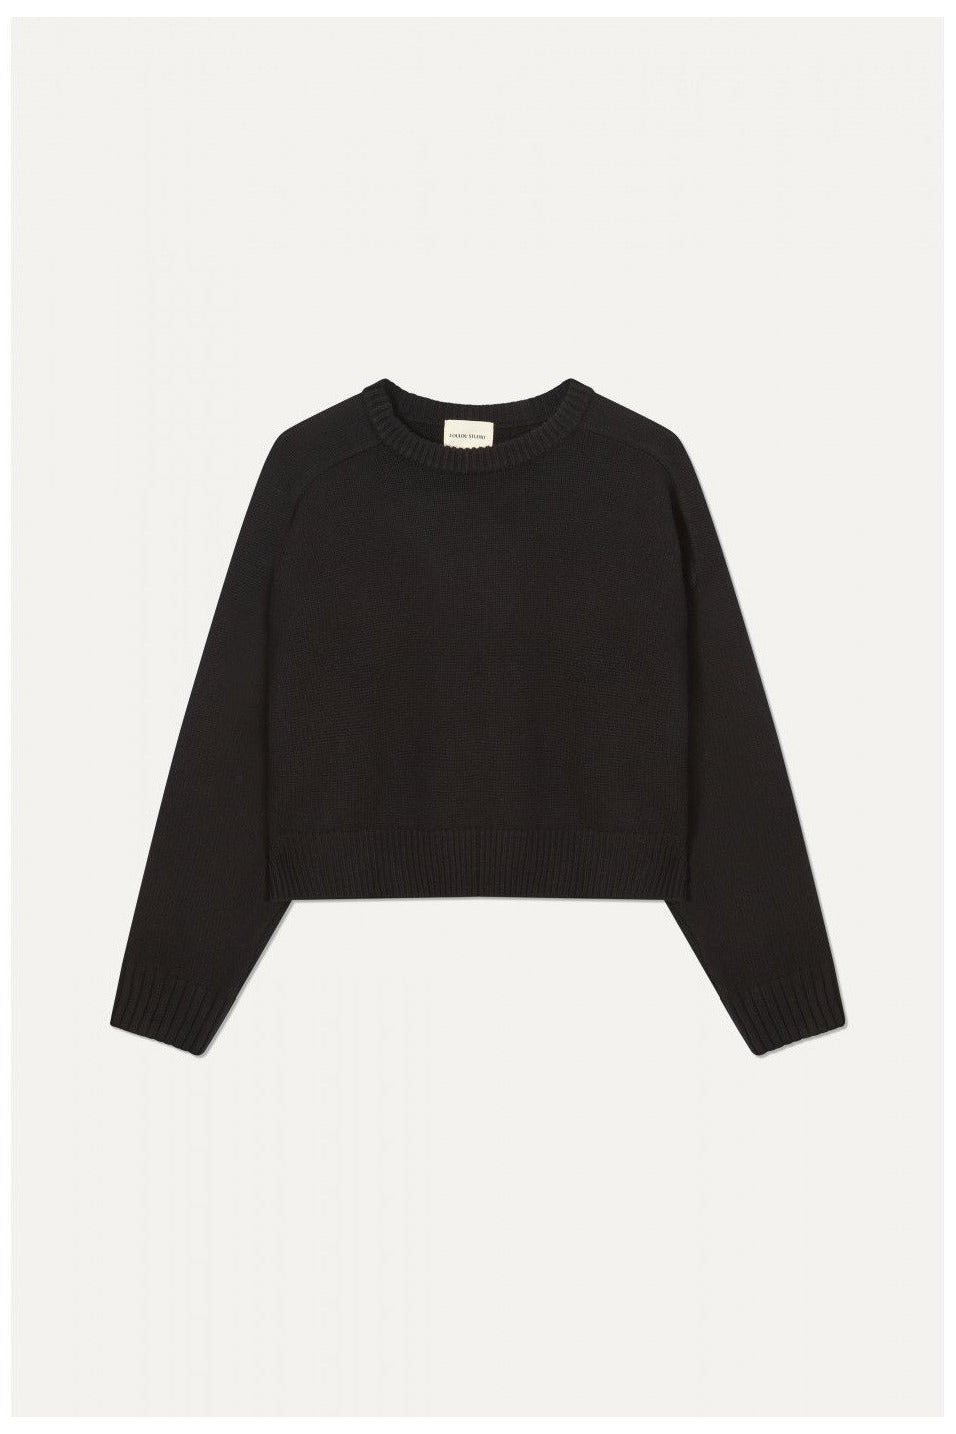 CASHMERE WOOL CROPPED SWEATER BY LOULOU STUDIO IN BLACK - BEYOND STUDIOS